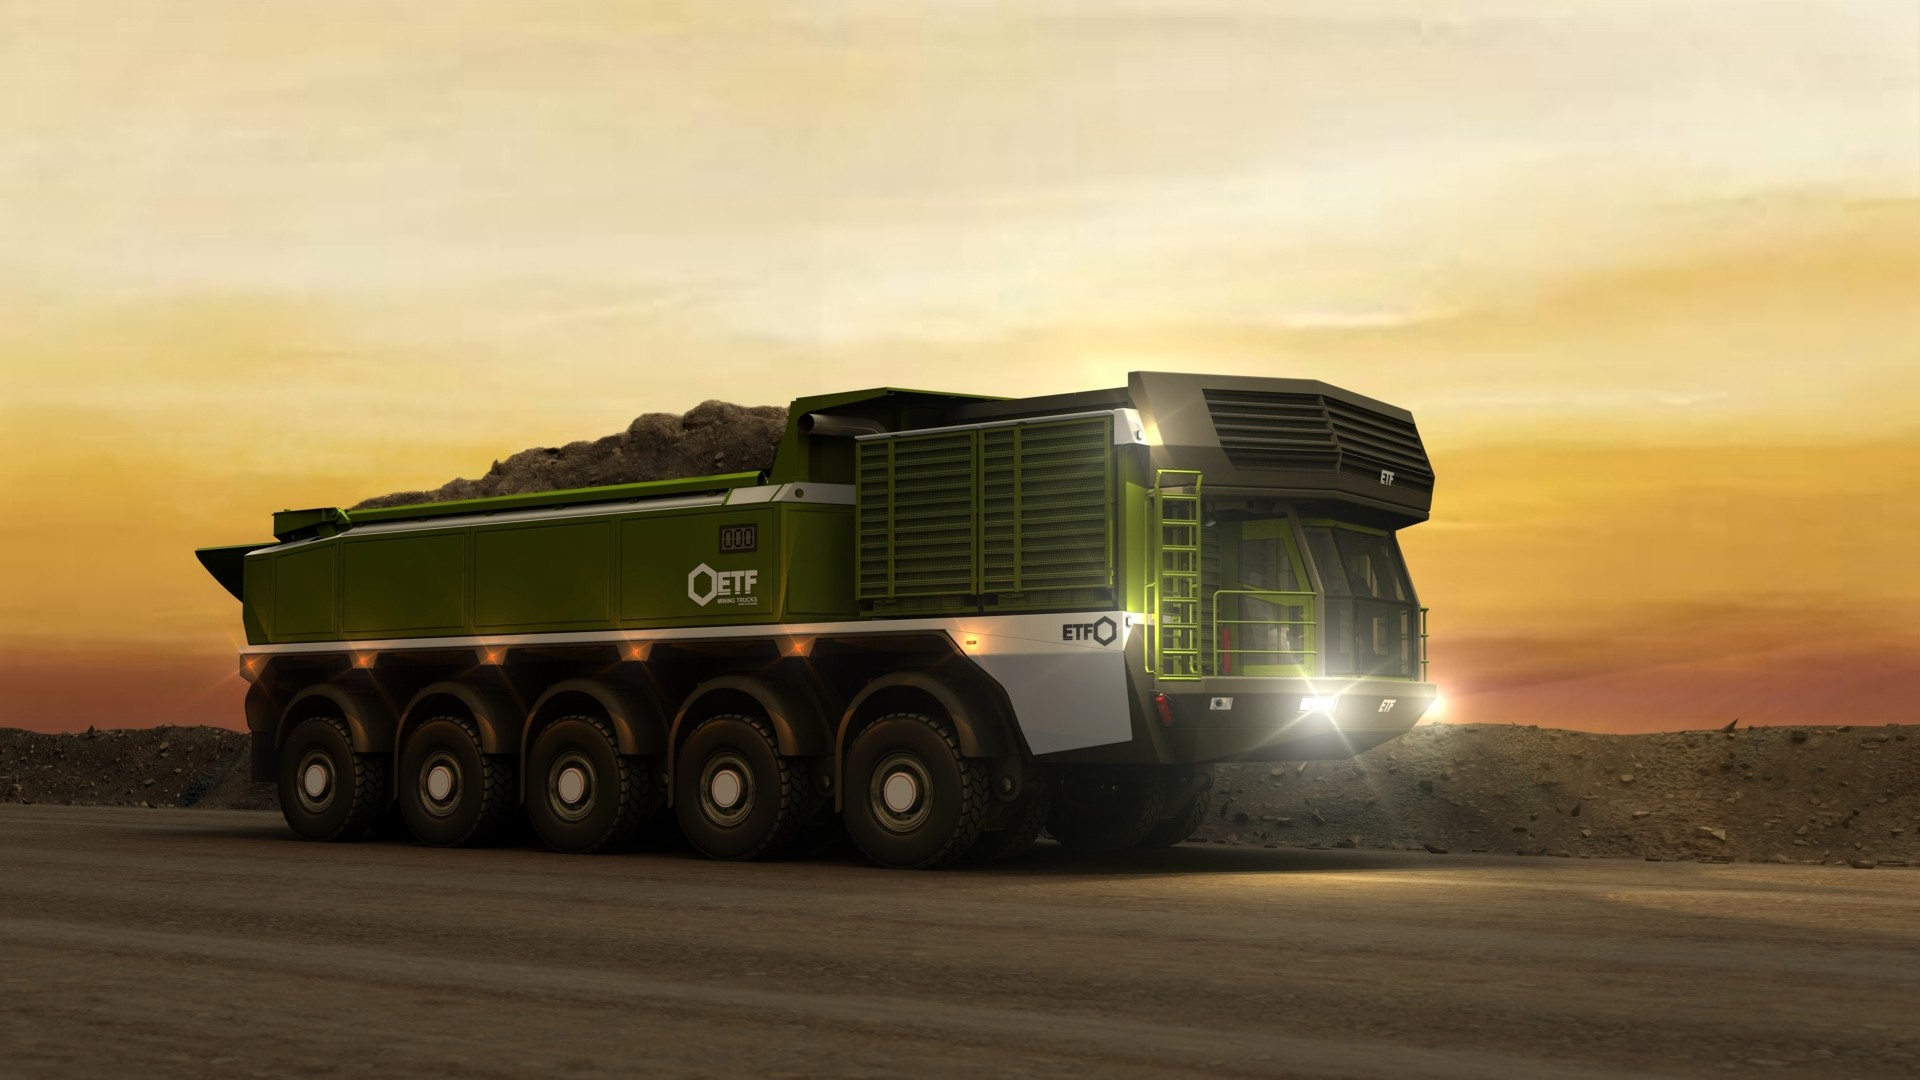 Etf Mt 240 Mining Truck Hd Wallpaper Background Image